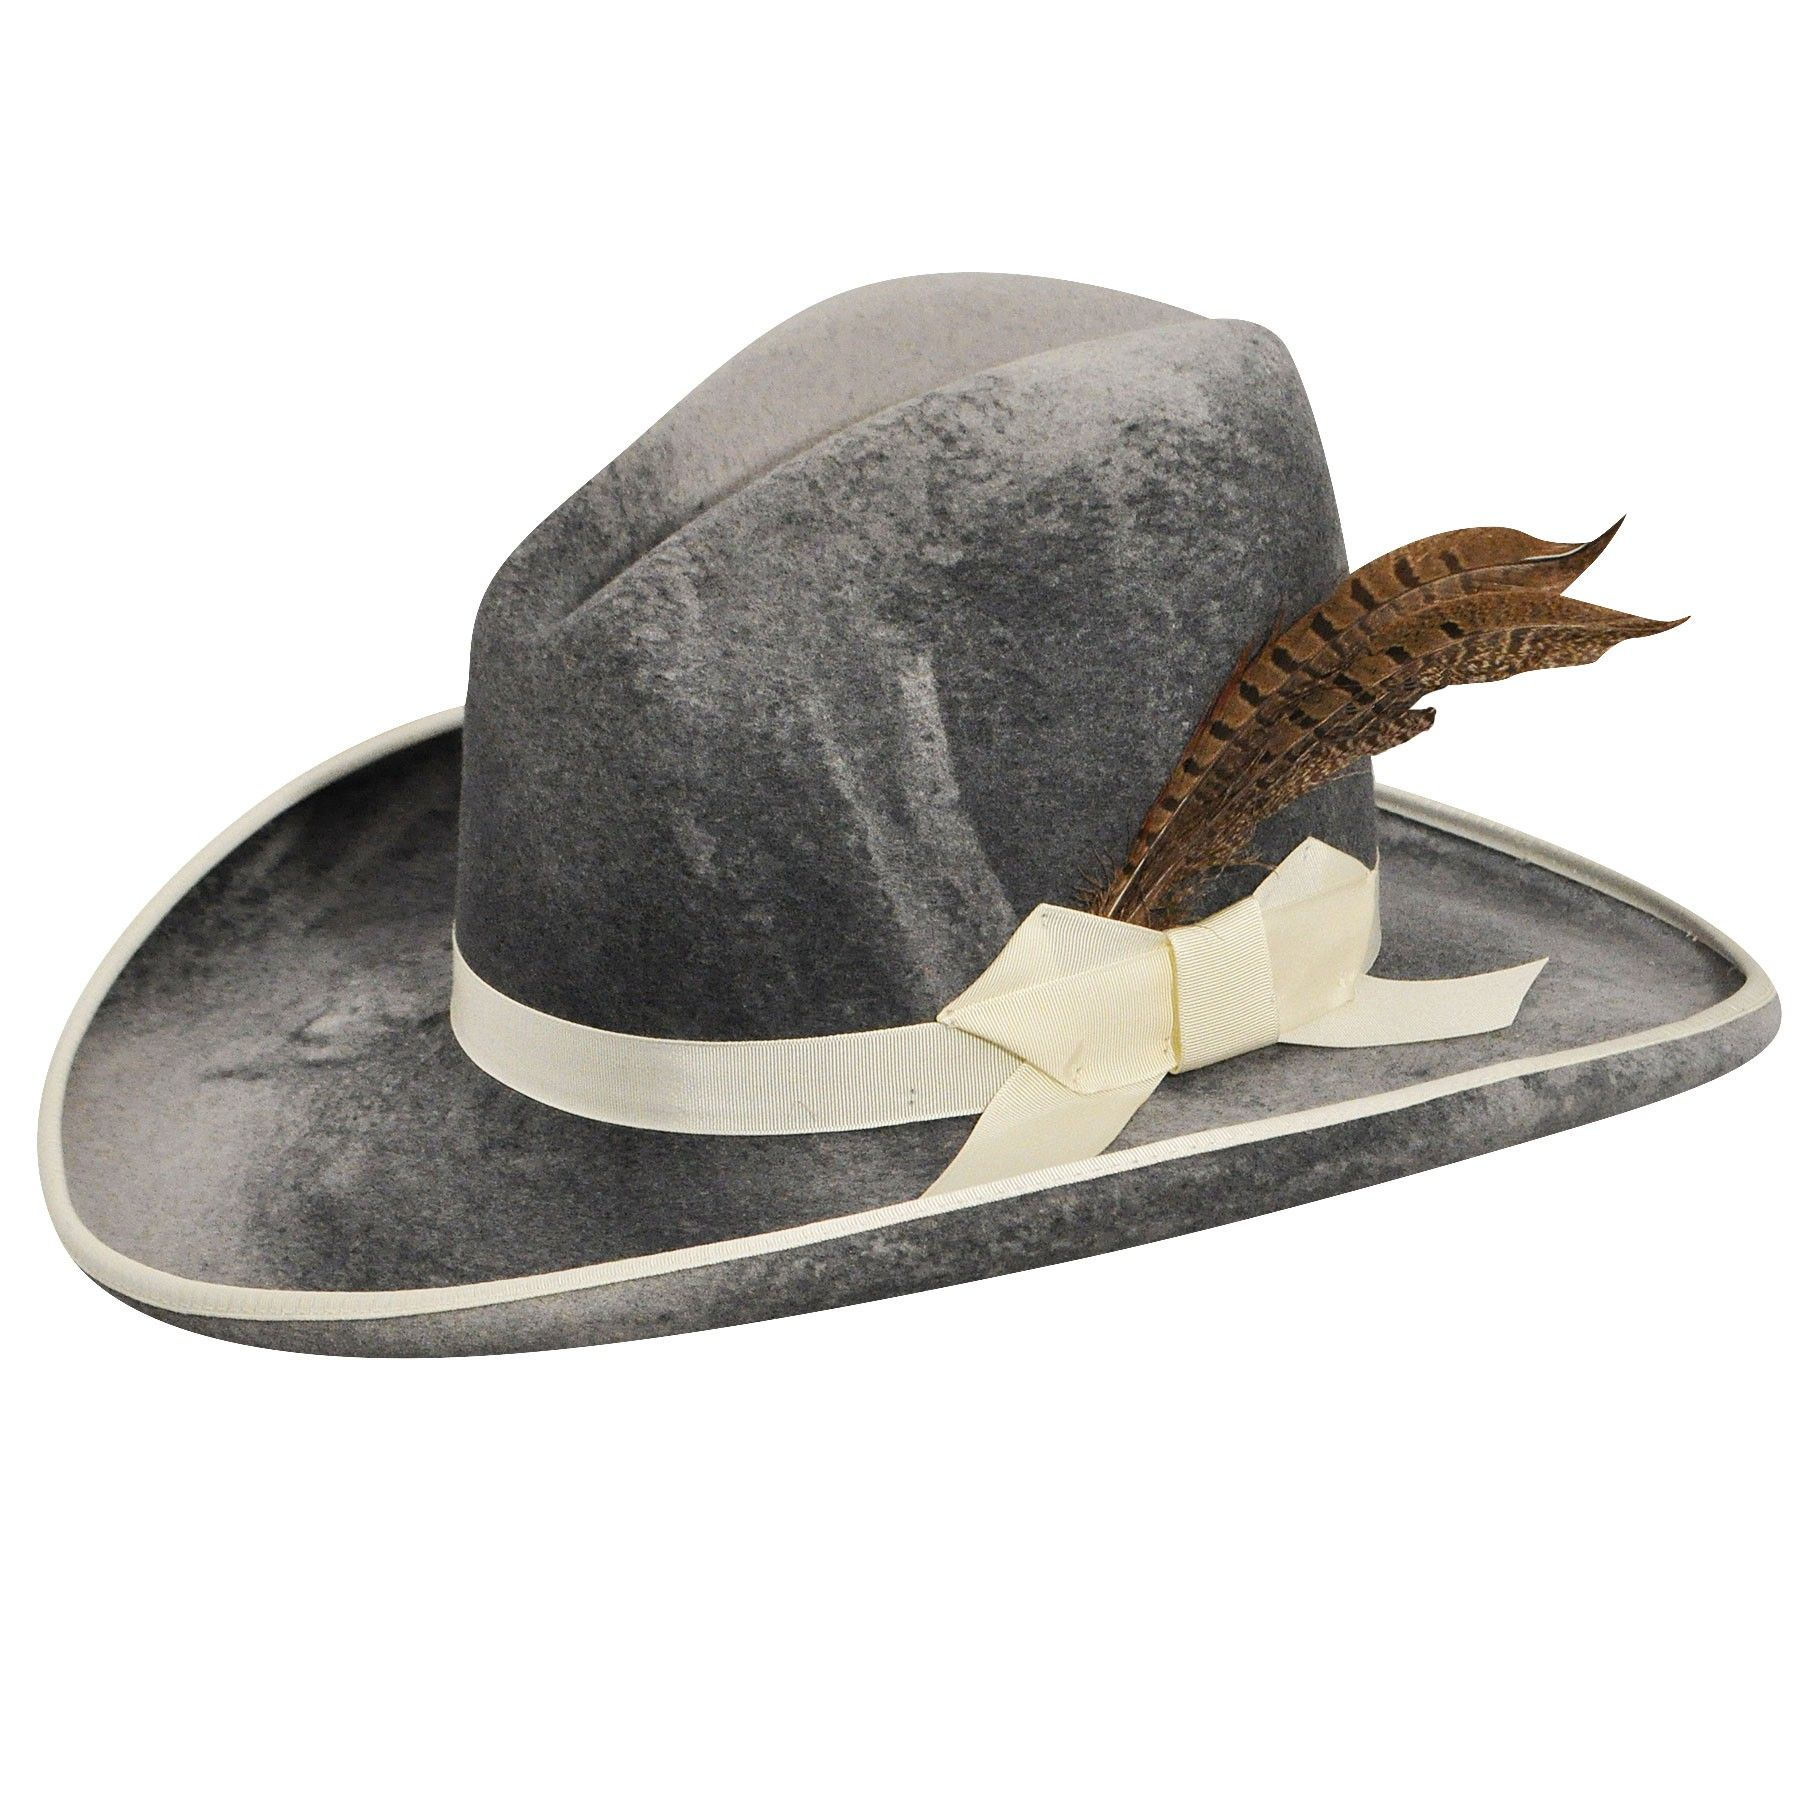 Renegade by Bailey Torin Western Hat - hats.com  d734eb219795